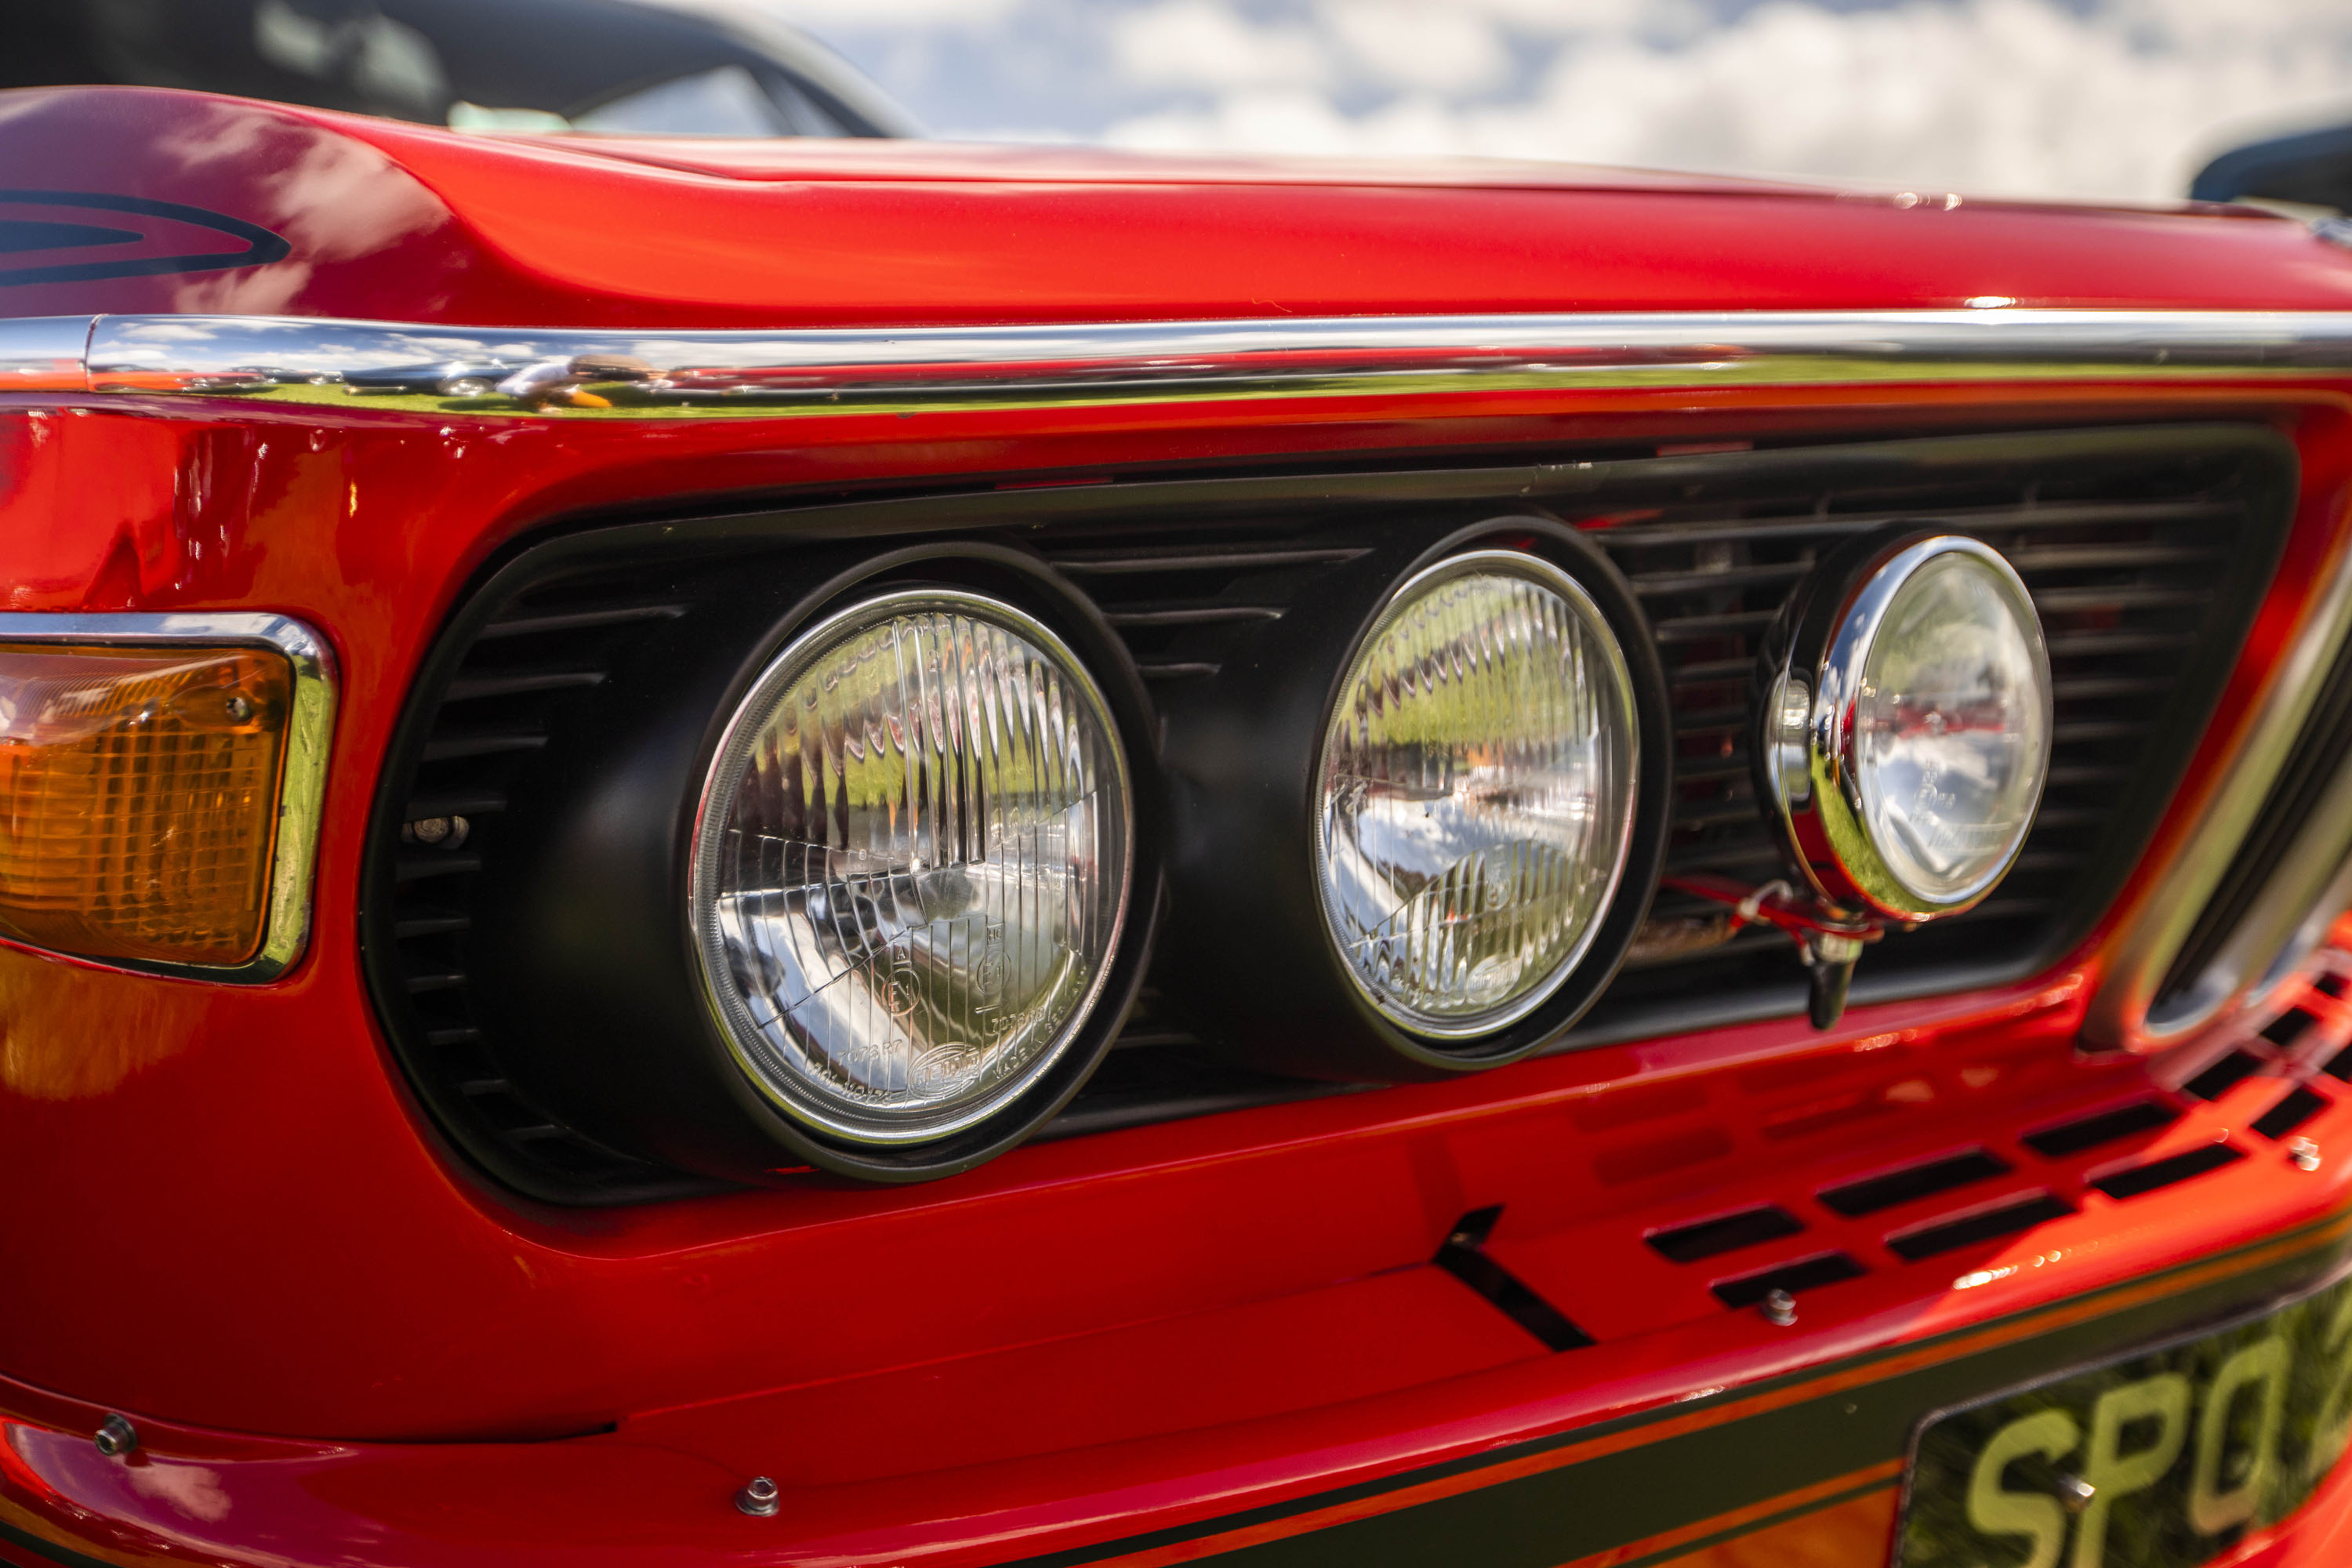 BMW 3.0 CSL headlights